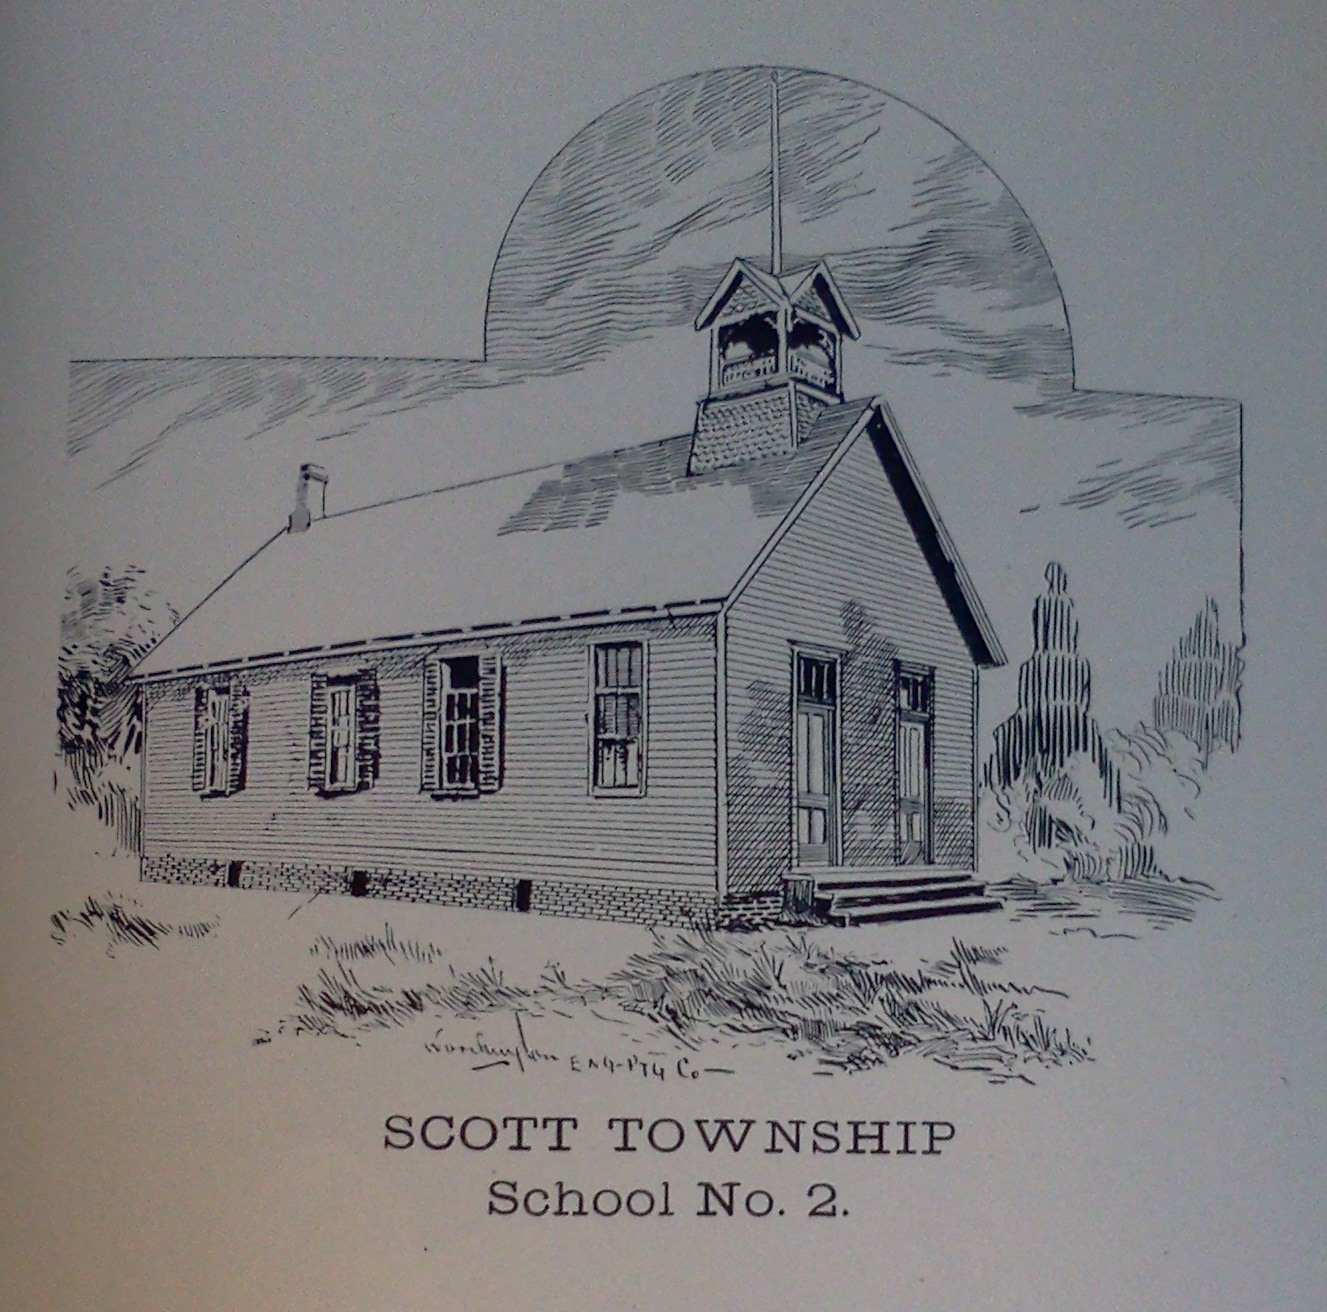 Scott Township School No. 2